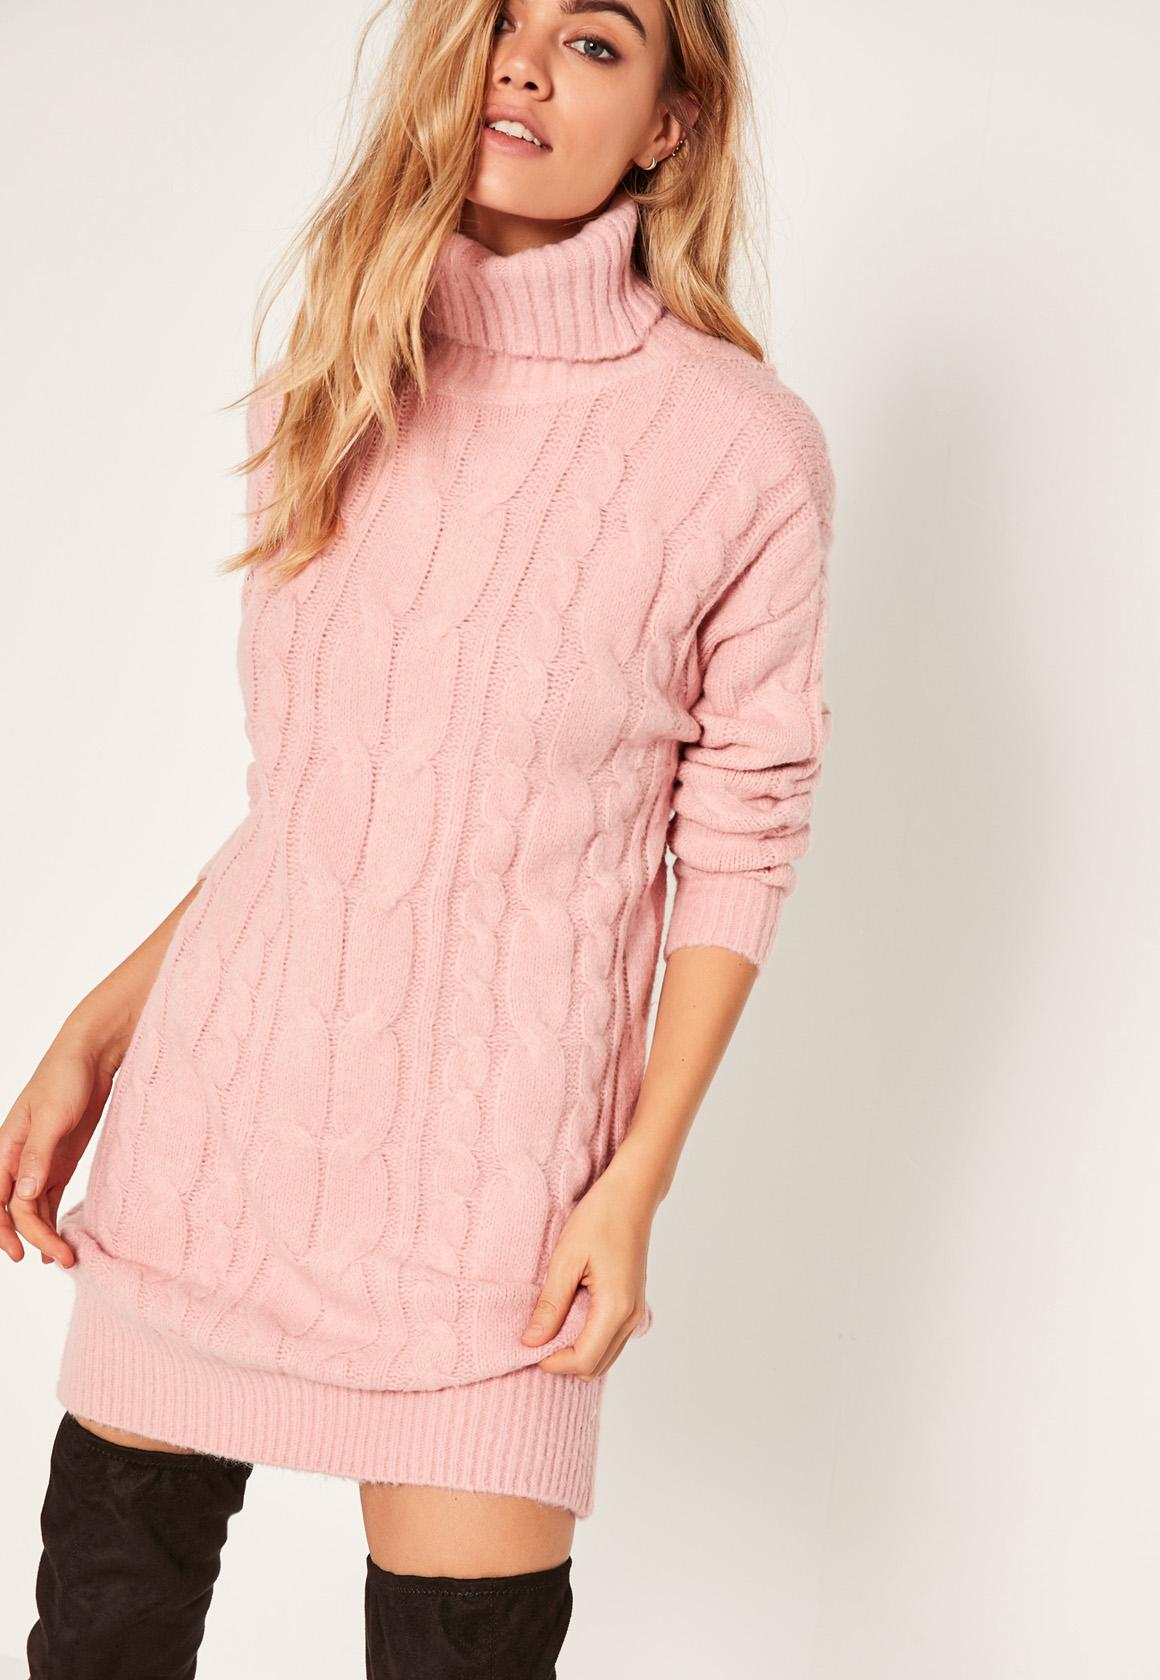 2019 year for girls- Sweater pink dress